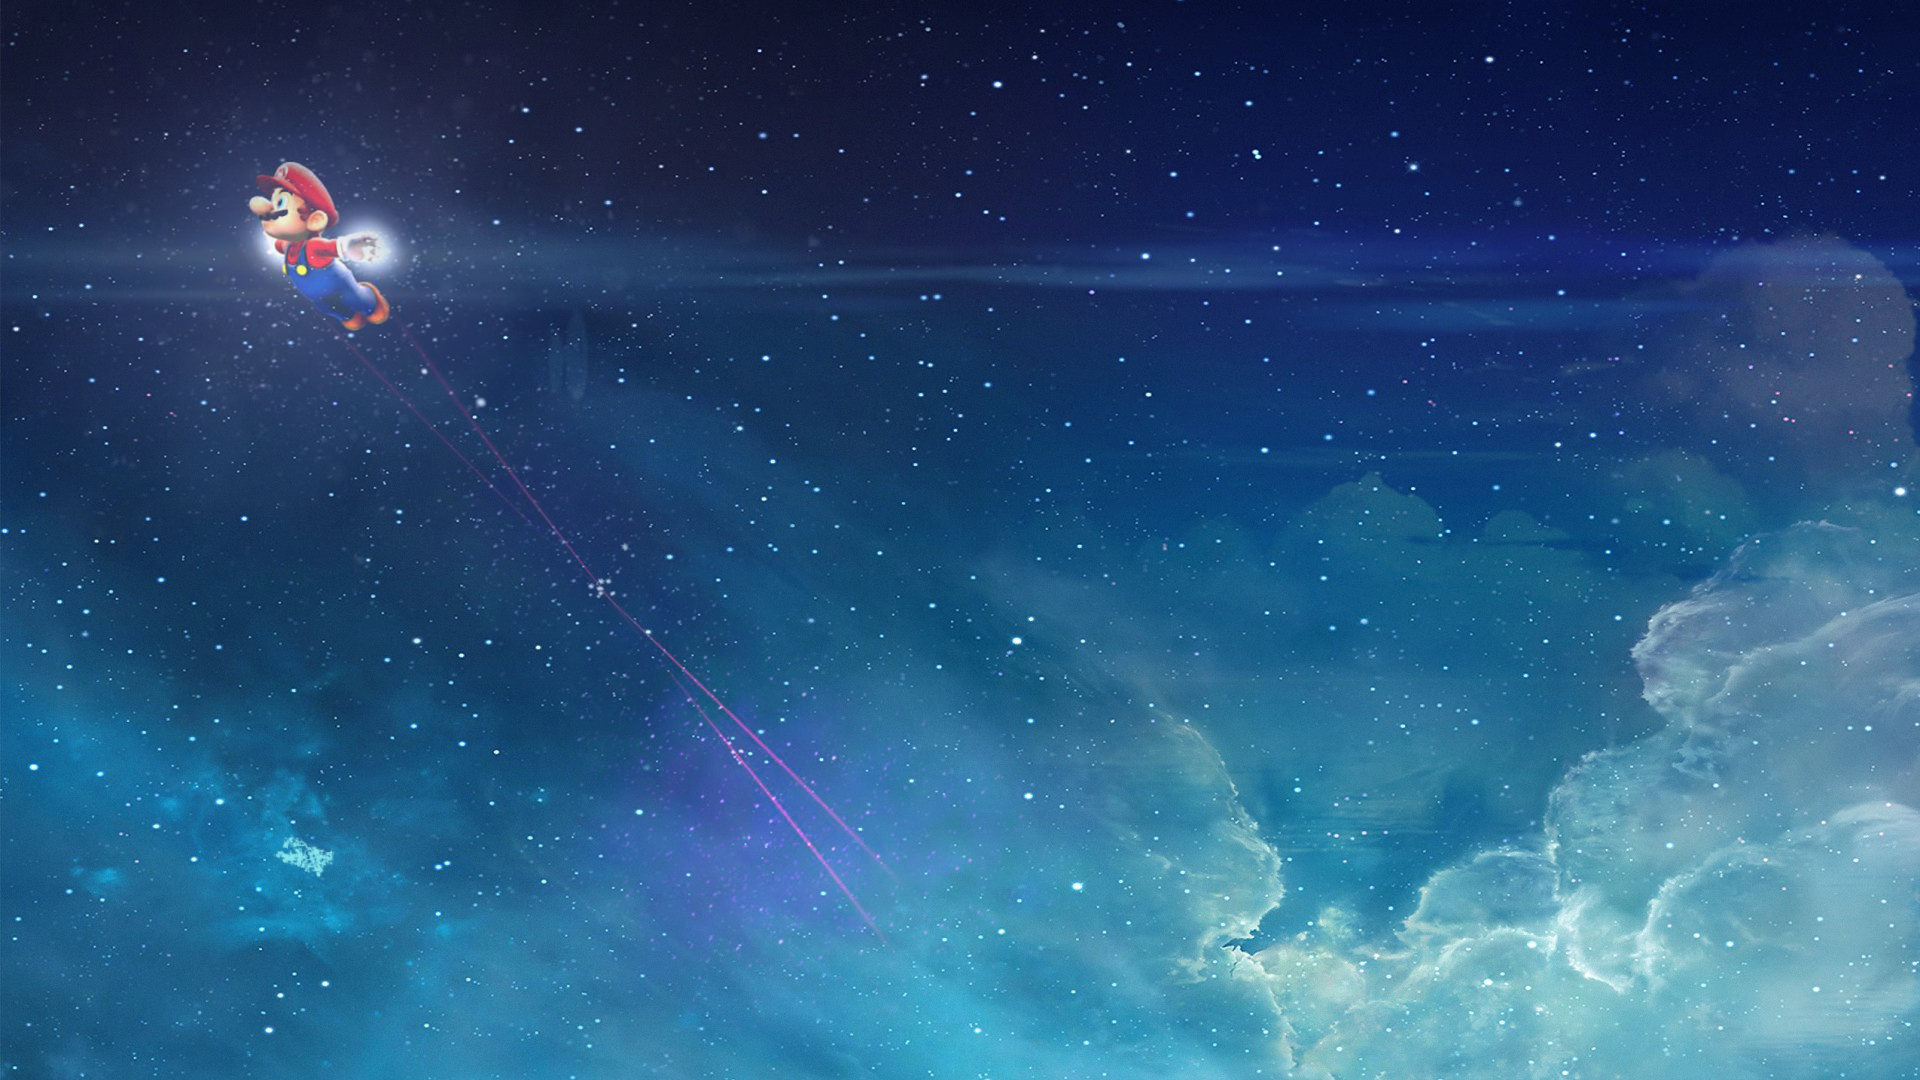 Super Mario Galaxy Redux Wallpaper By Supabloopa On Deviantart